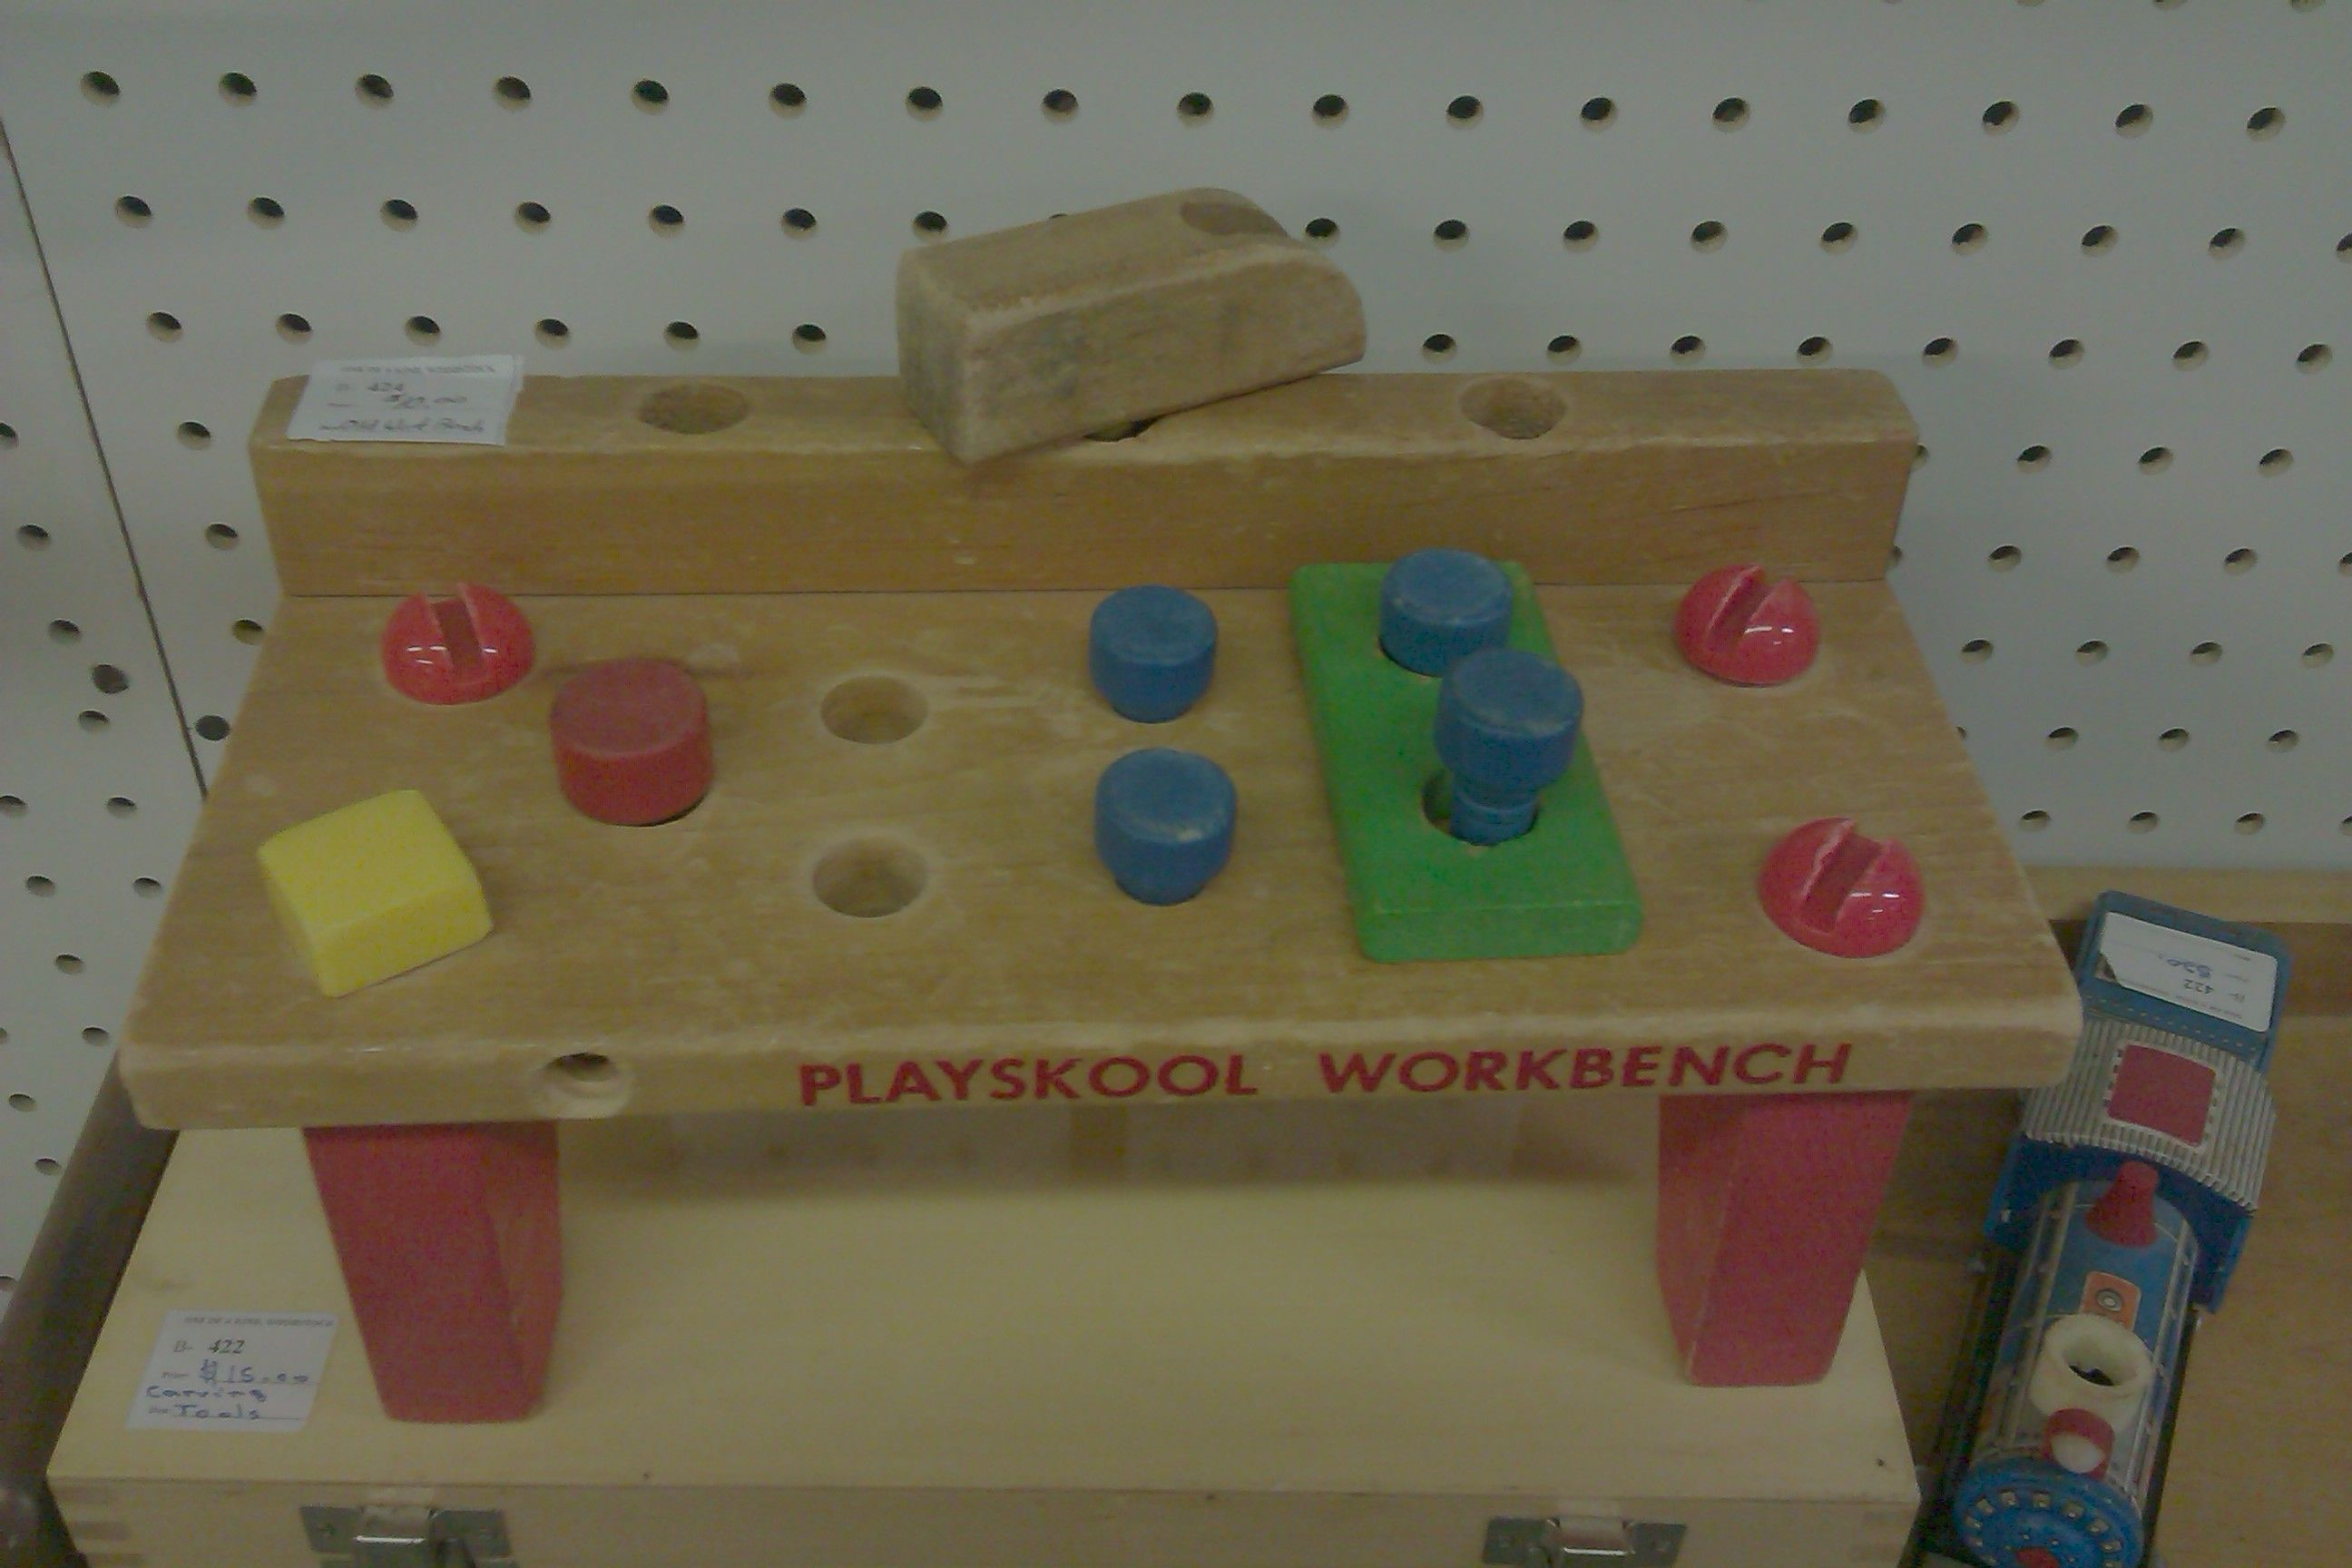 Playskool Wooden Workbench 1970s I Had One Of These When I Was 3 Woodstock Antique Mall 2015 Playskool Childhood Toys Cabbage Patch Kids